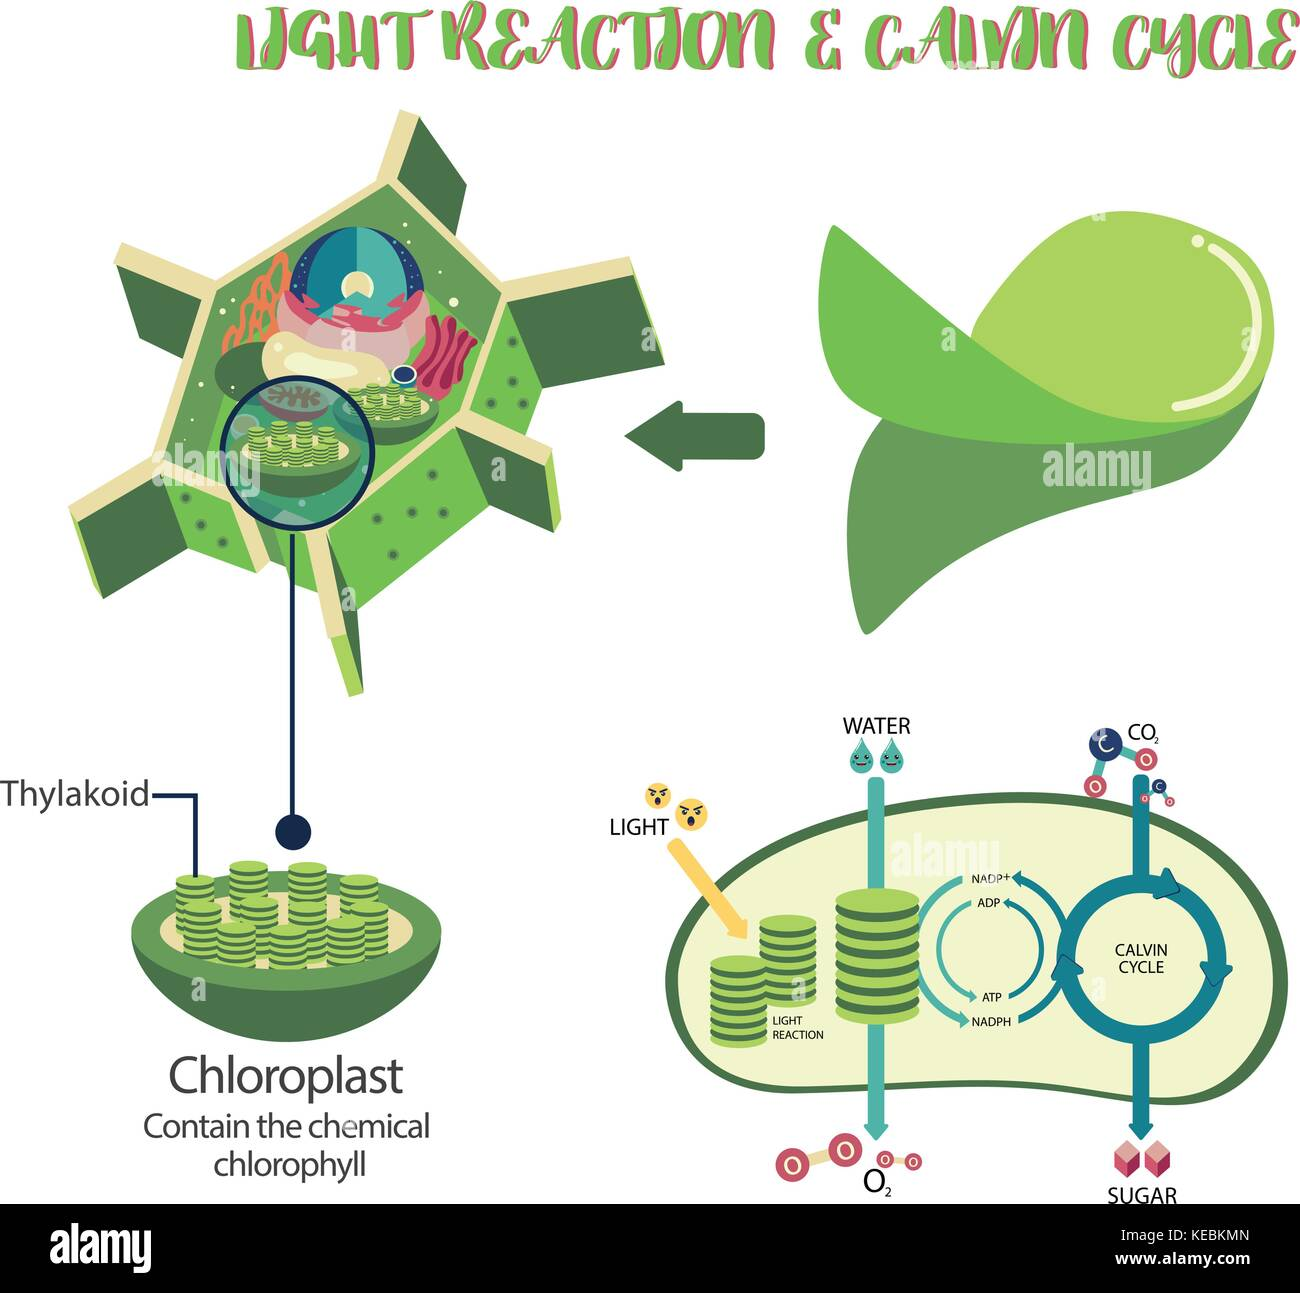 Photosynthesis plant cell diagram illustration vector design stock photosynthesis plant cell diagram illustration vector design ccuart